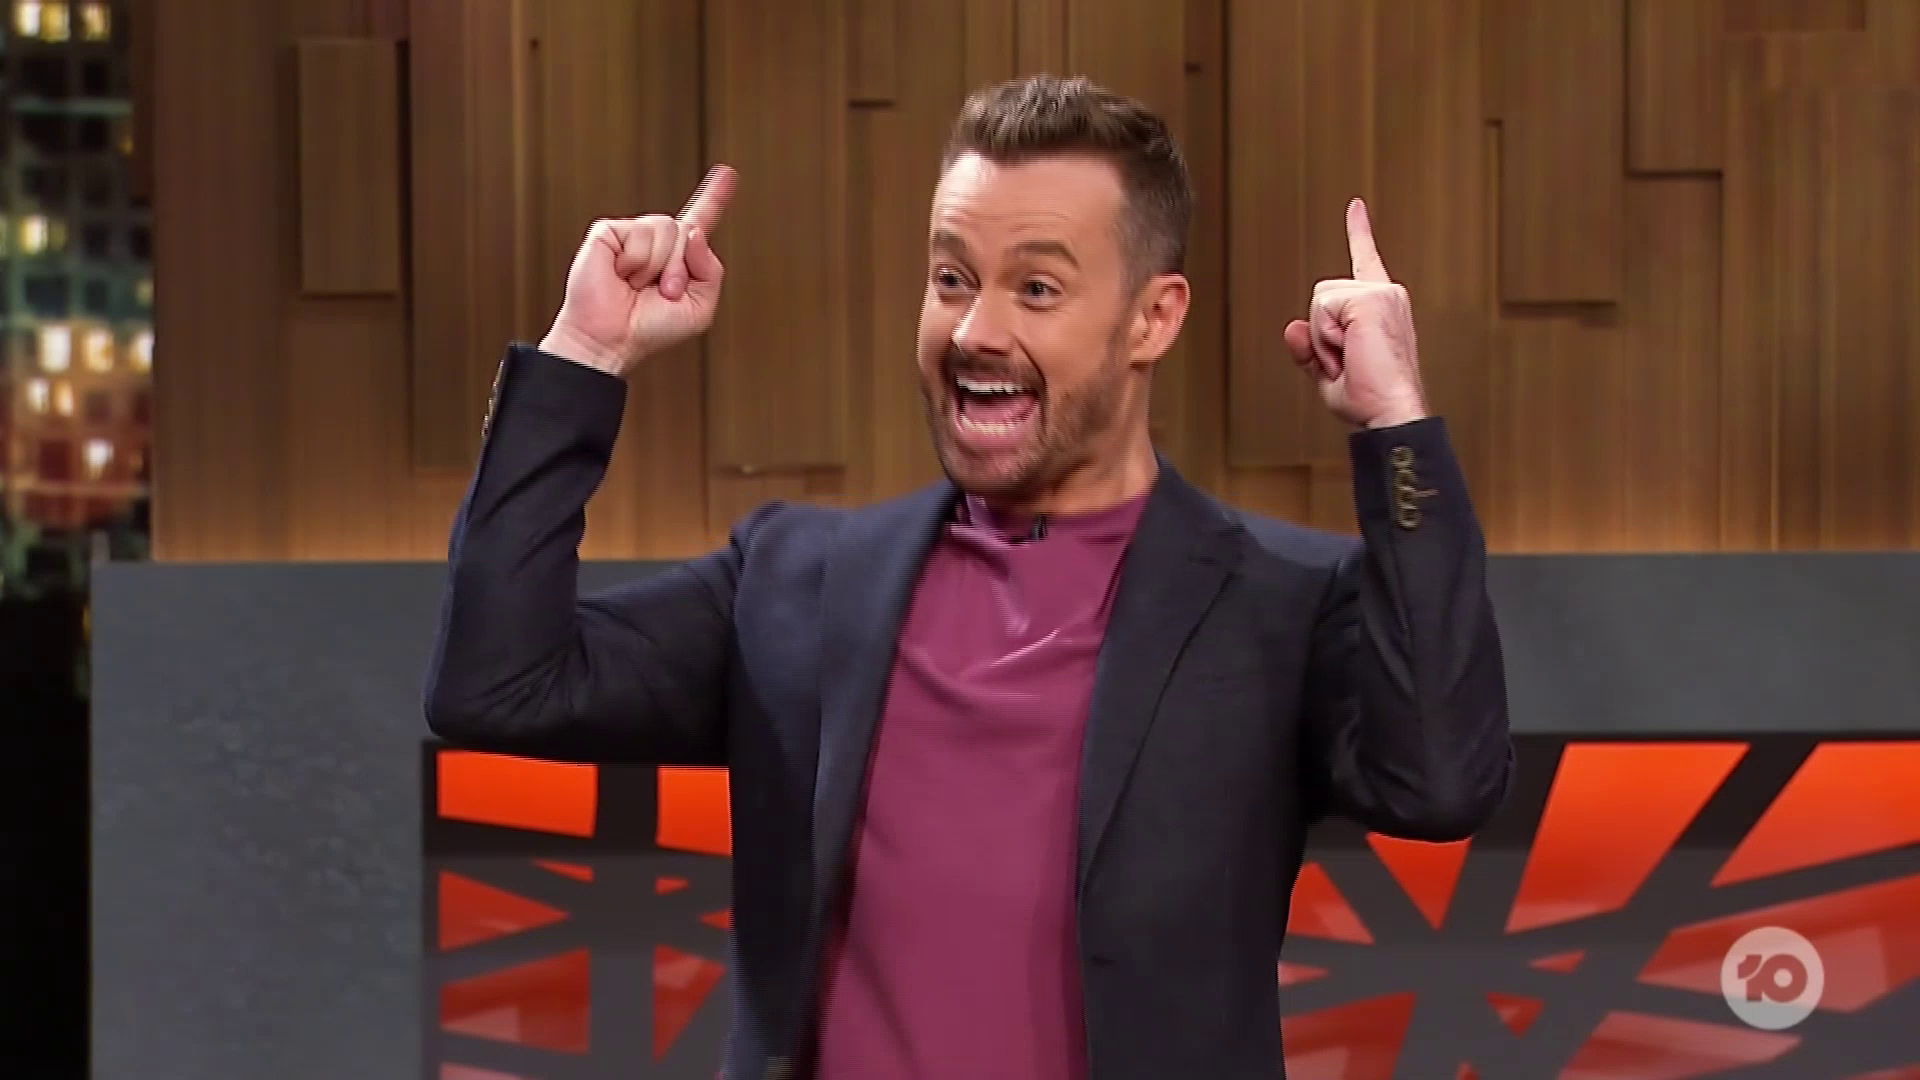 GRANT DENYER on the premiere episode of CELEBRITY NAME GAME which launched with a small 314,000 viewers